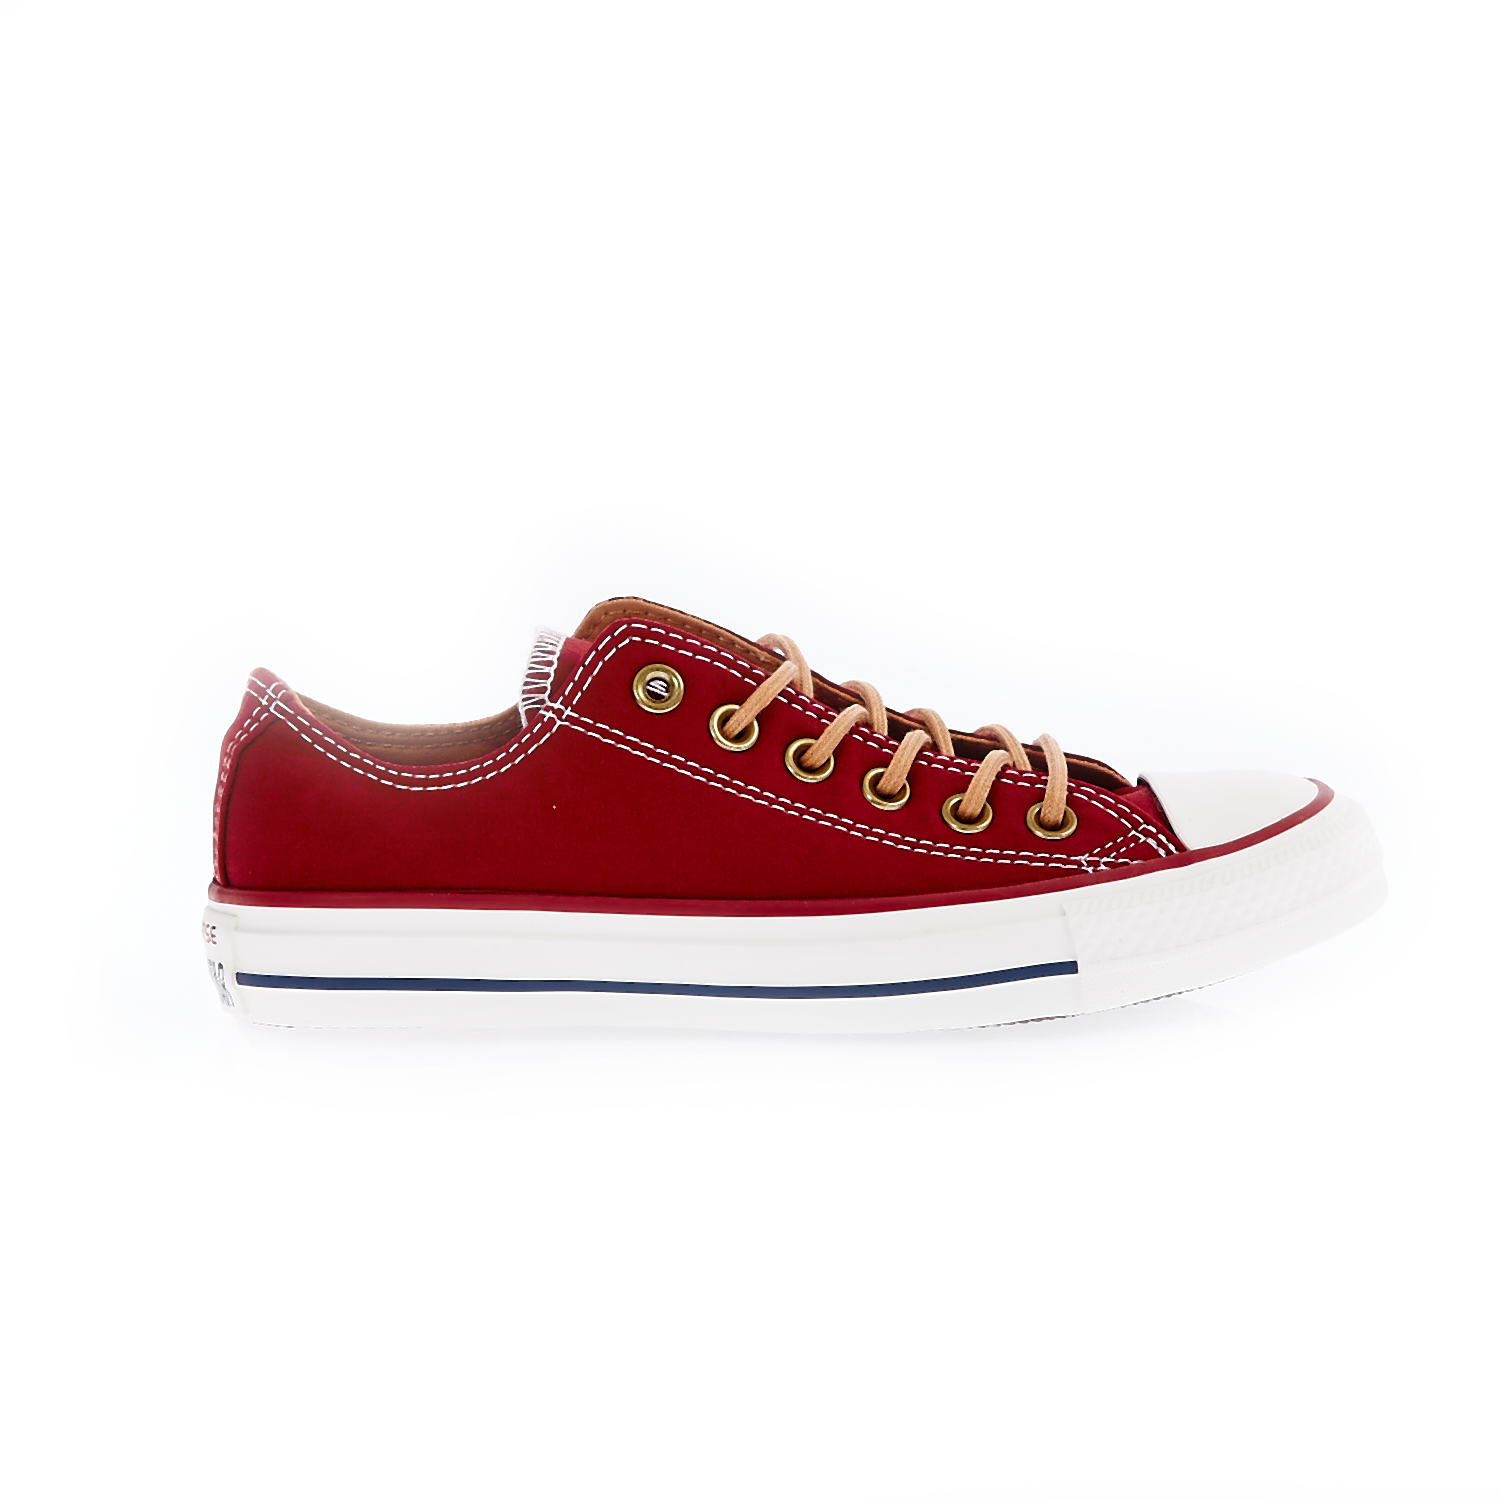 CONVERSE – Unisex παπούτσια Chuck Taylor All Star Ox μπορντώ